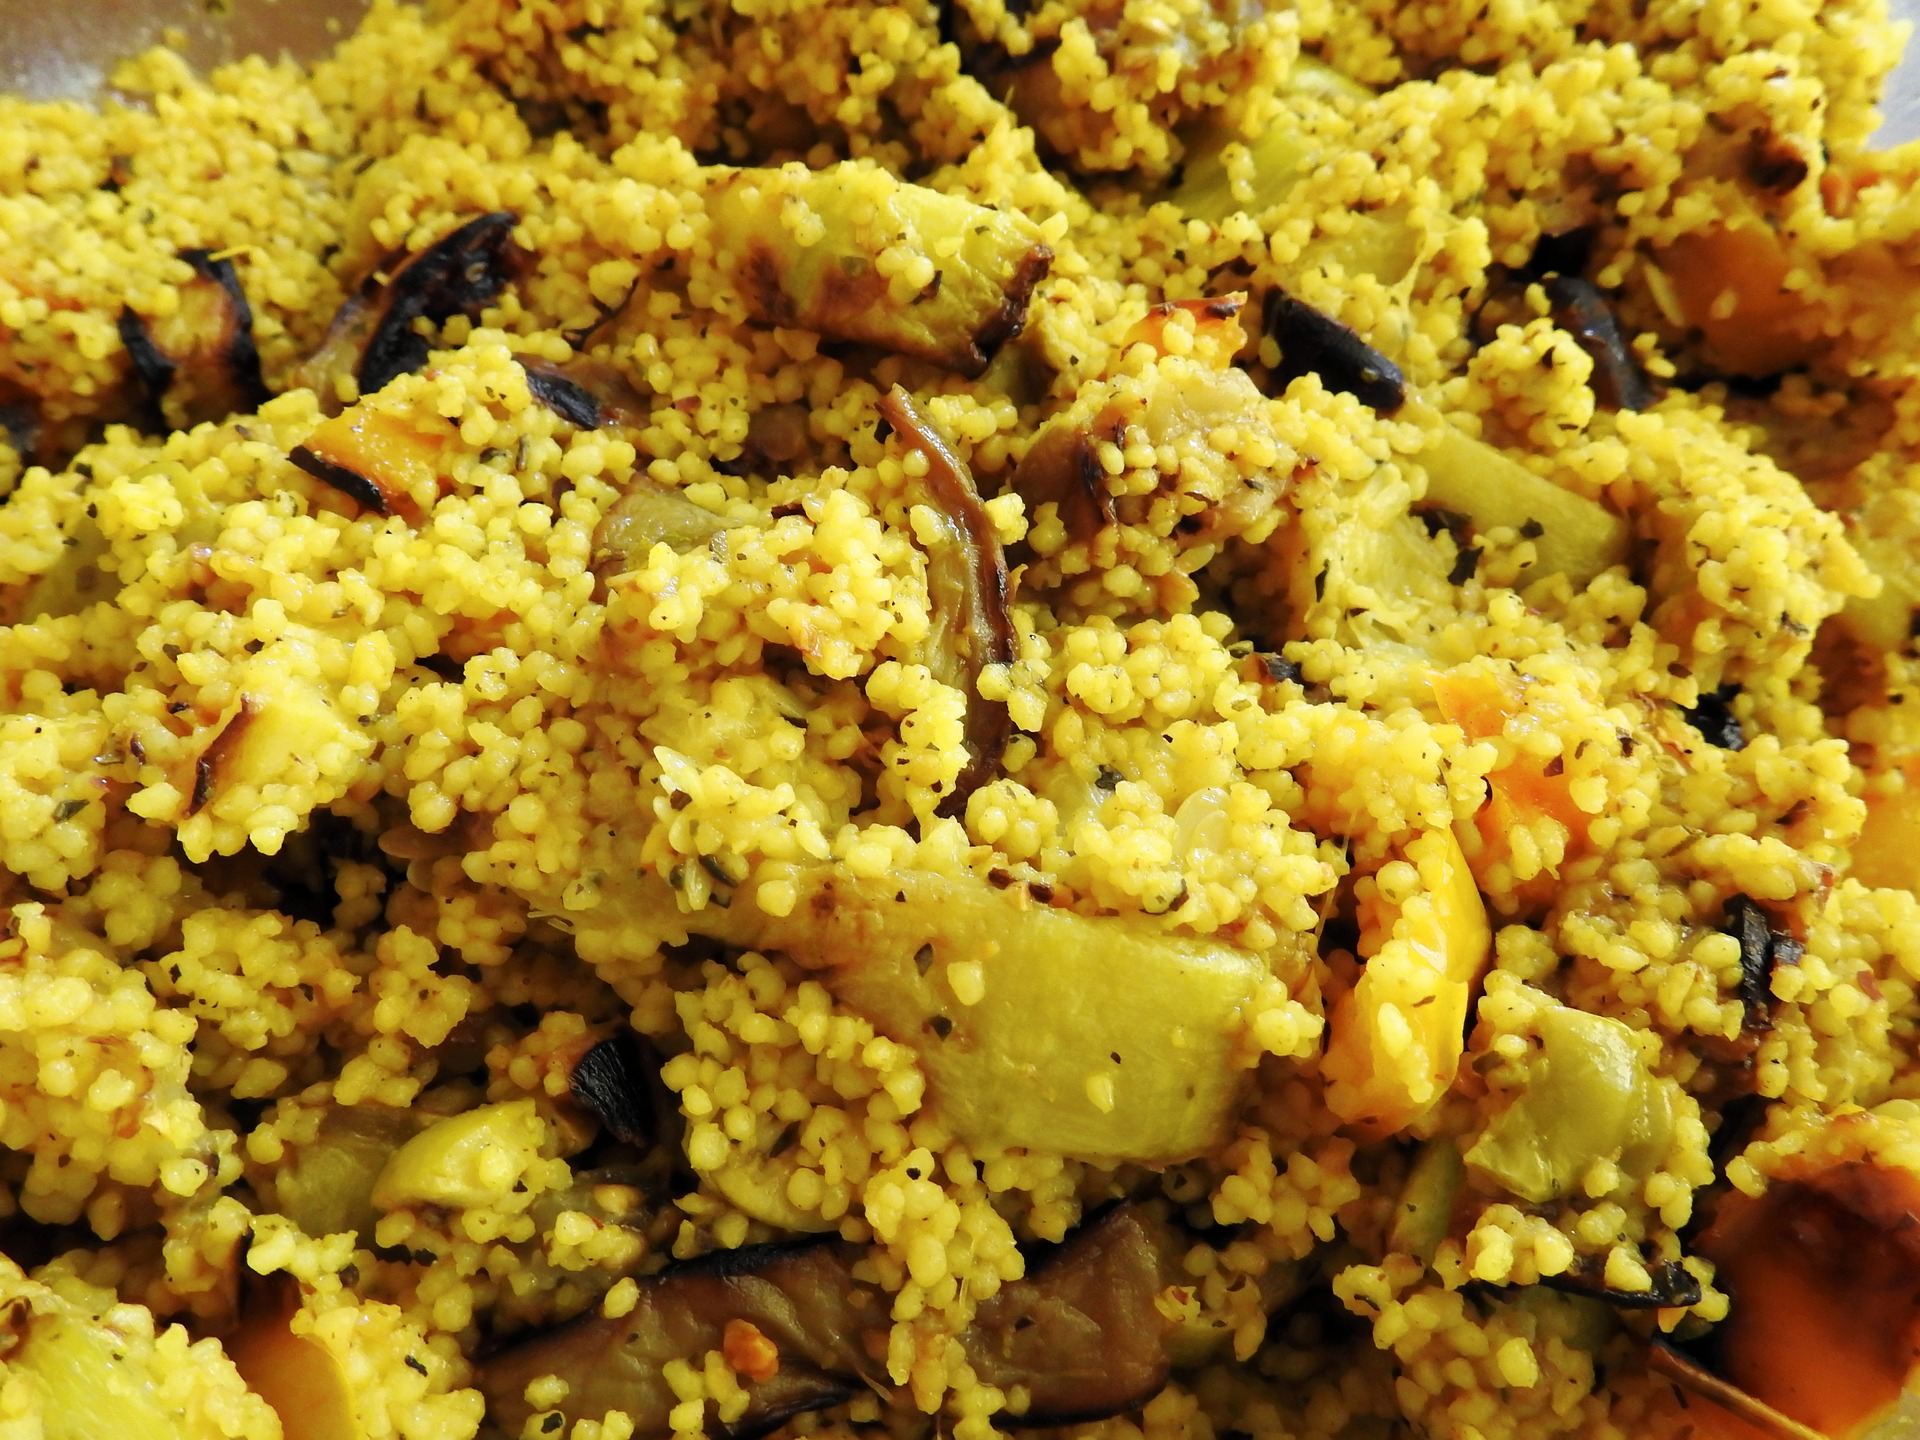 Roasted Vegetables and Cous Cous